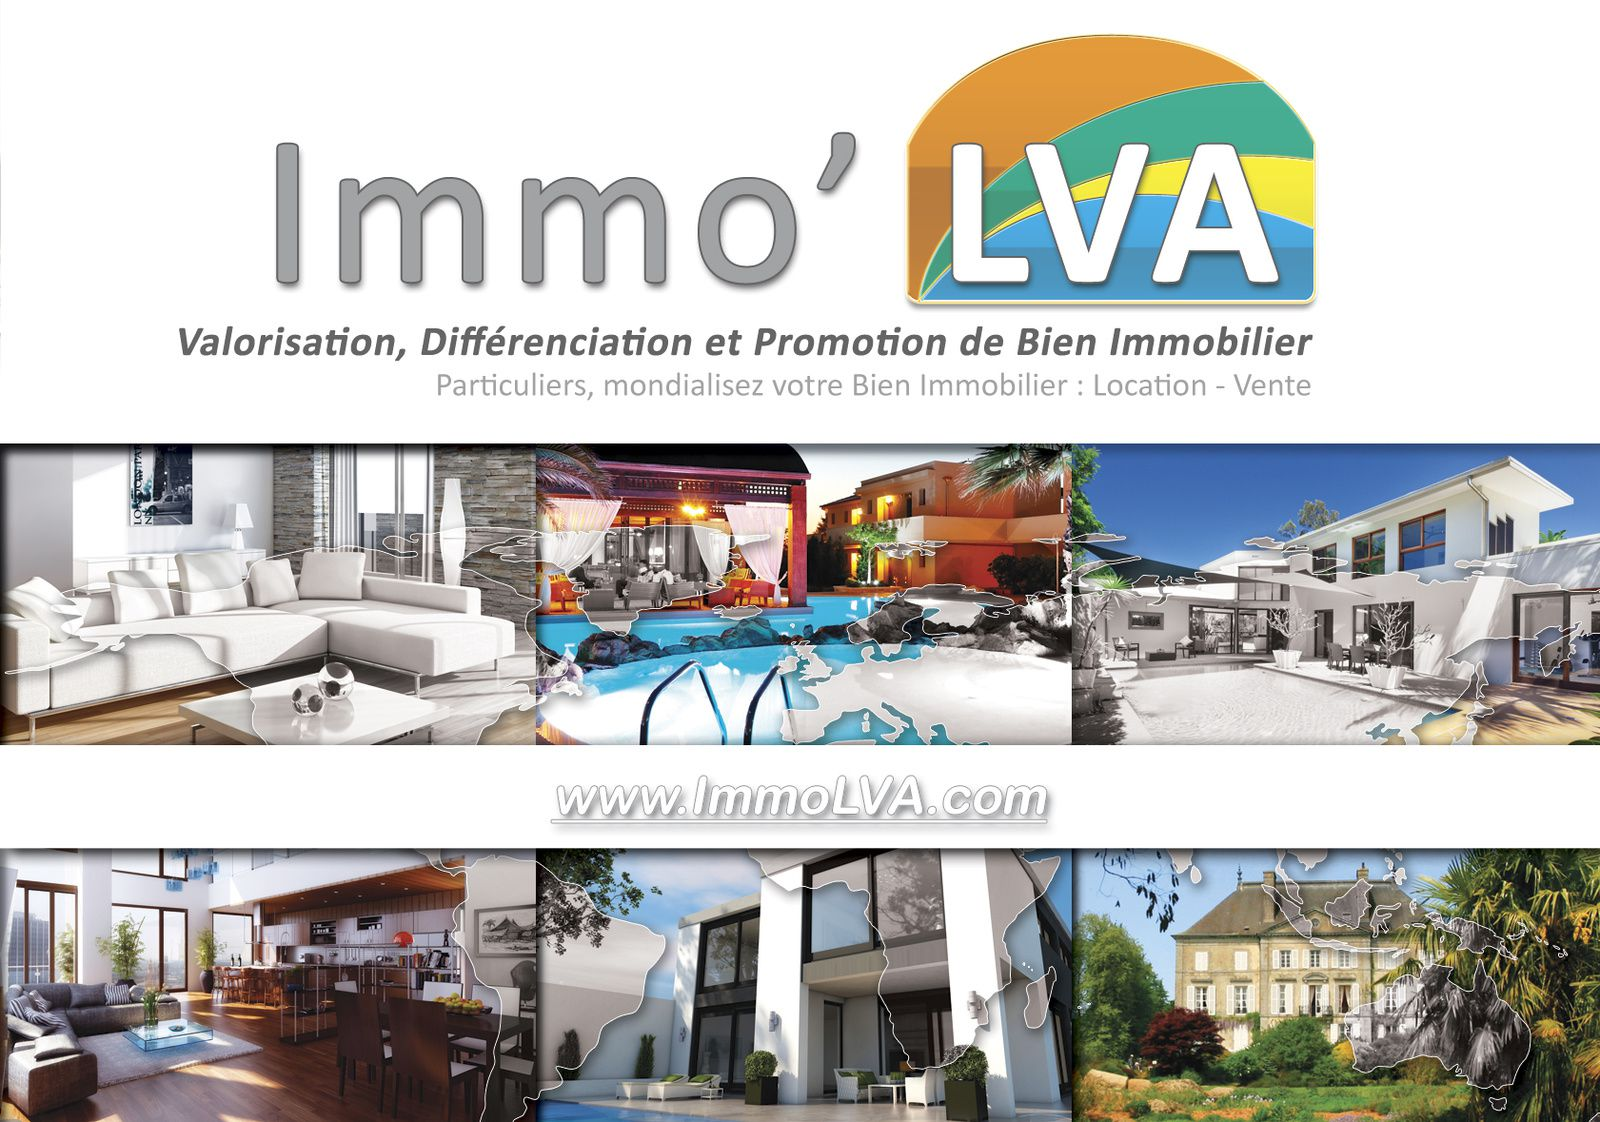 Immo'LVA Blown by B'Digital, powered by B'Leader, spread by B'Sociable, amplified by B'Press, energized by New3S, hosted by 3DWC.biz